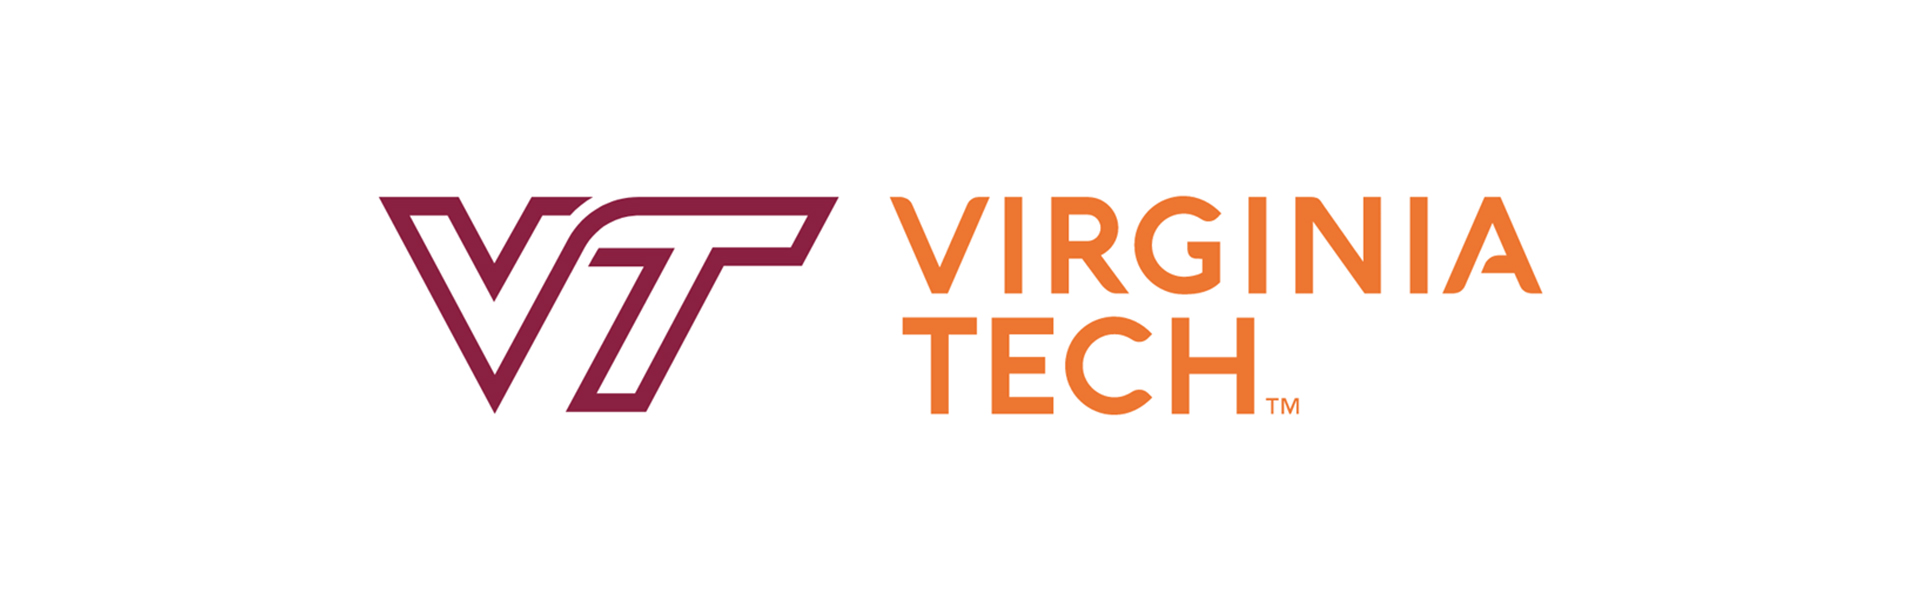 Heritage Client Virginia Tech Hospitality Department Announces Name Change